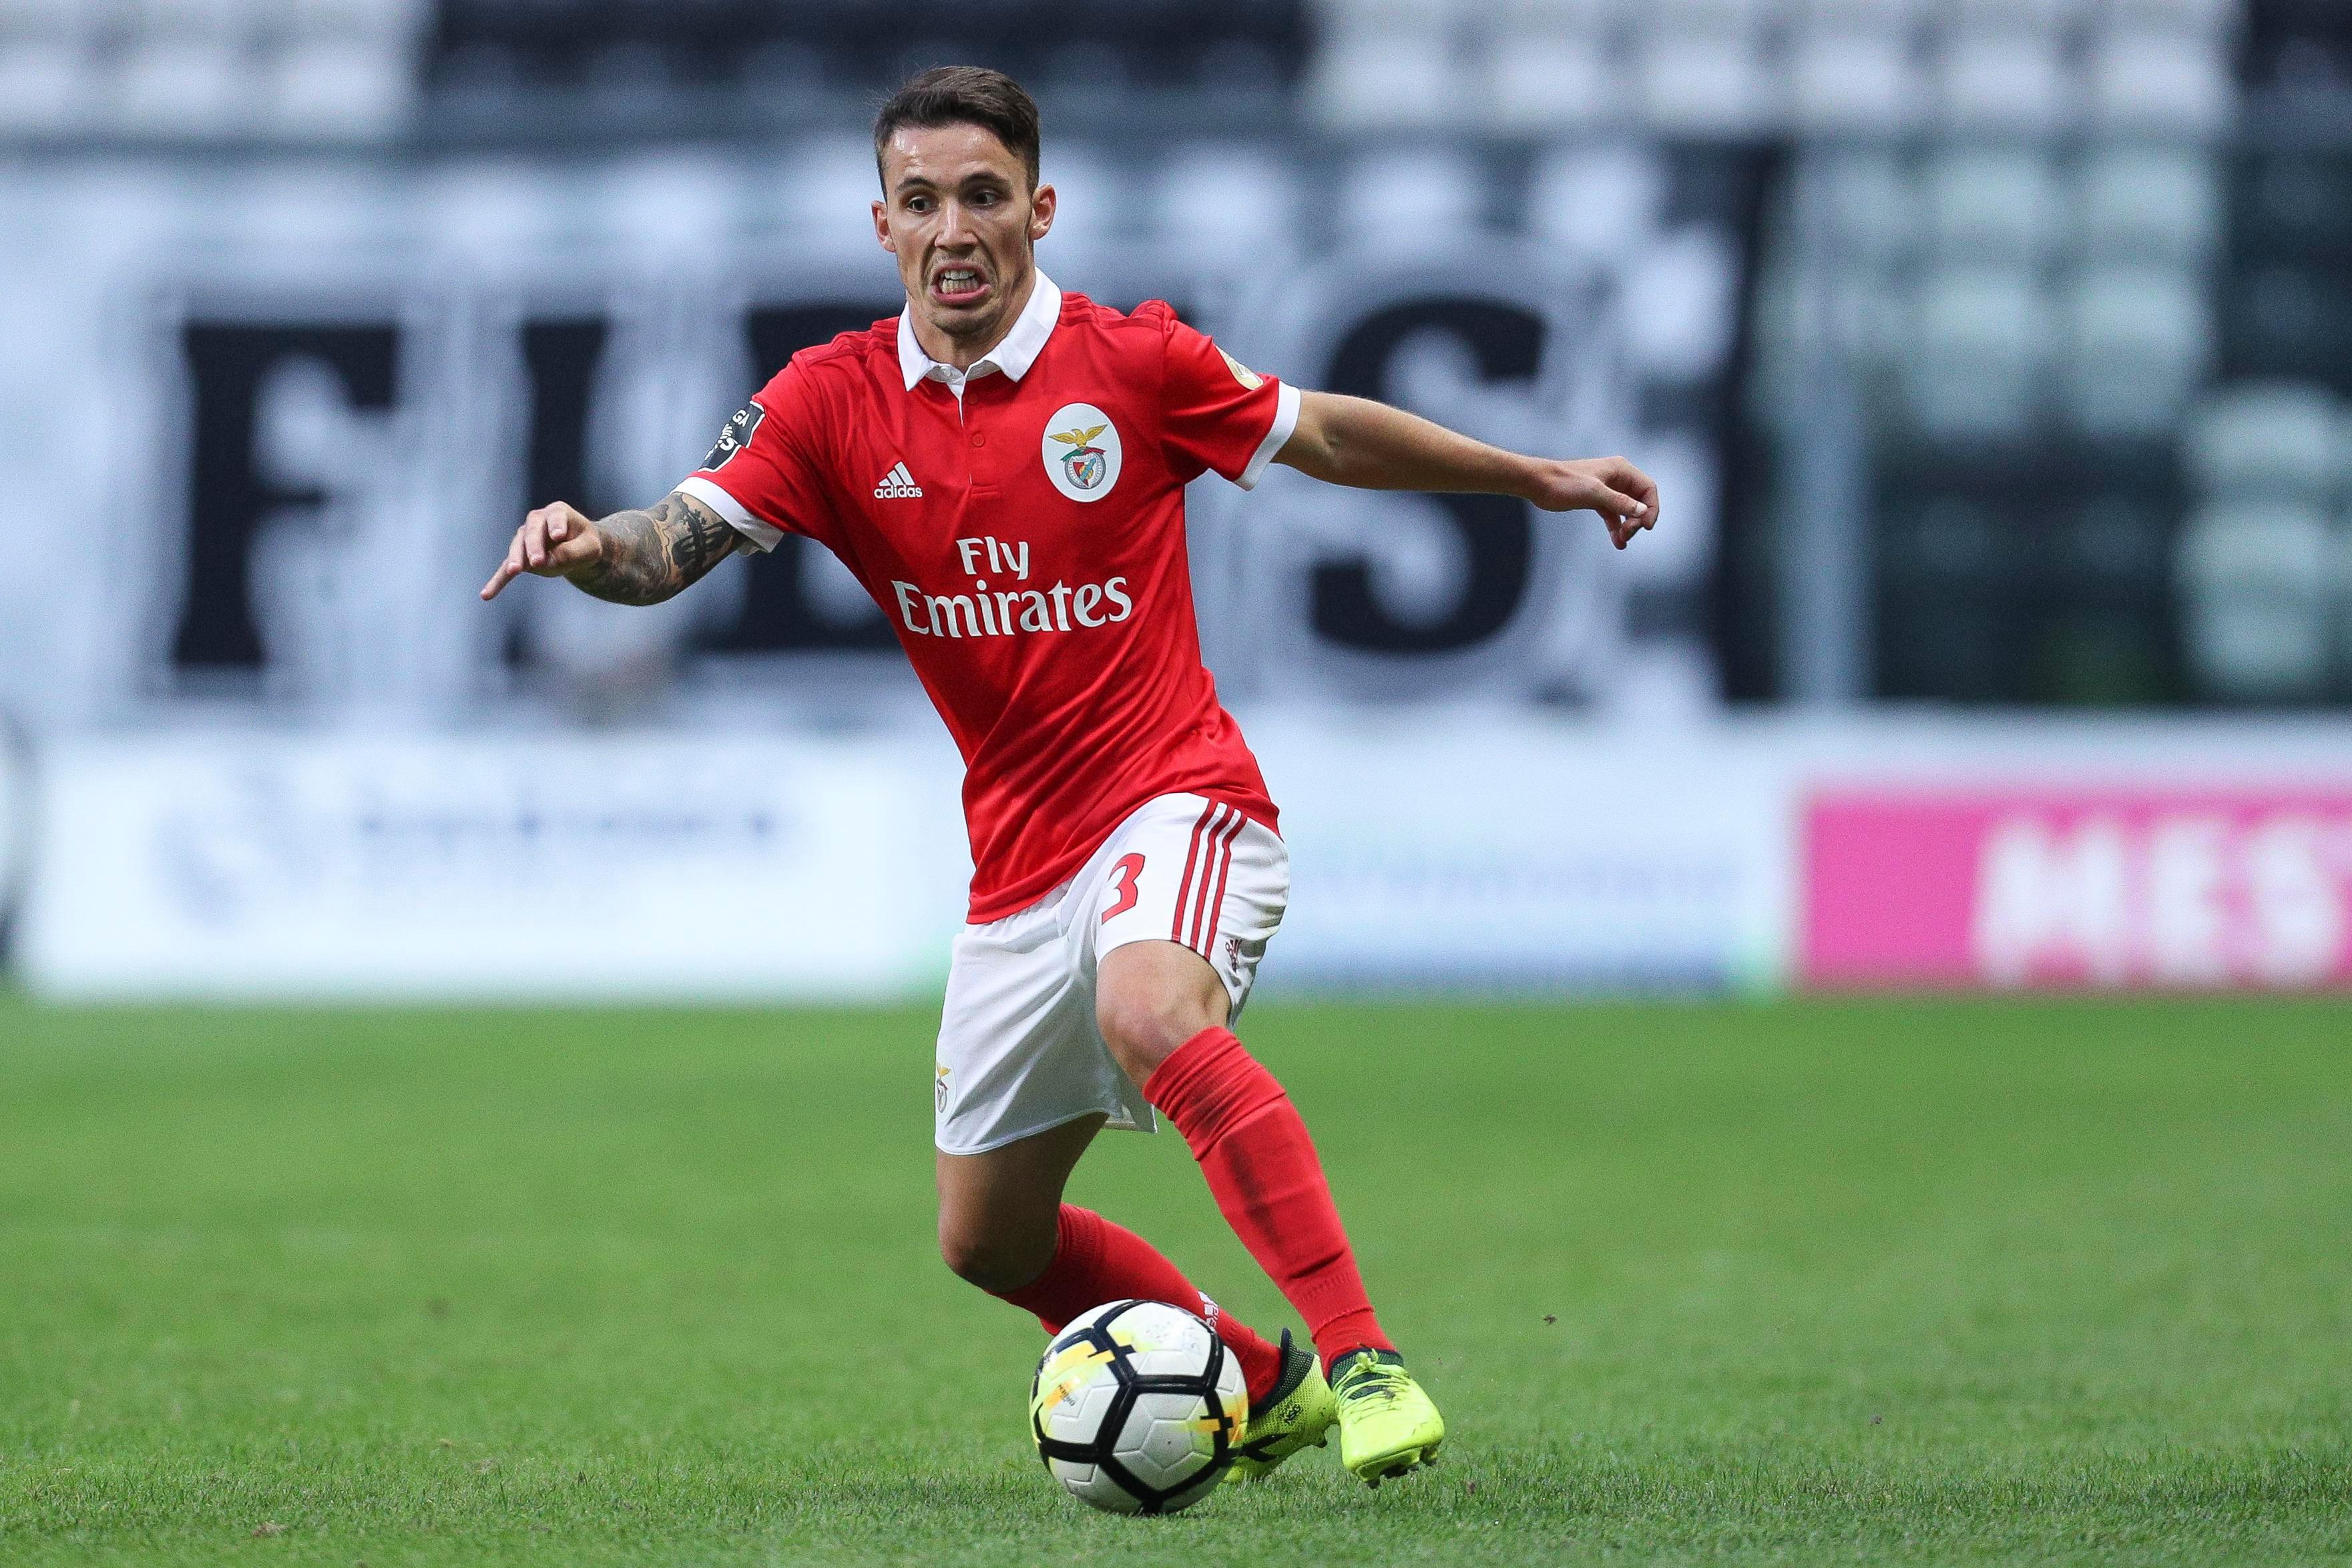 Napoli agree £27m deal to sign Manchester United target Alex Grimaldo from Benfica